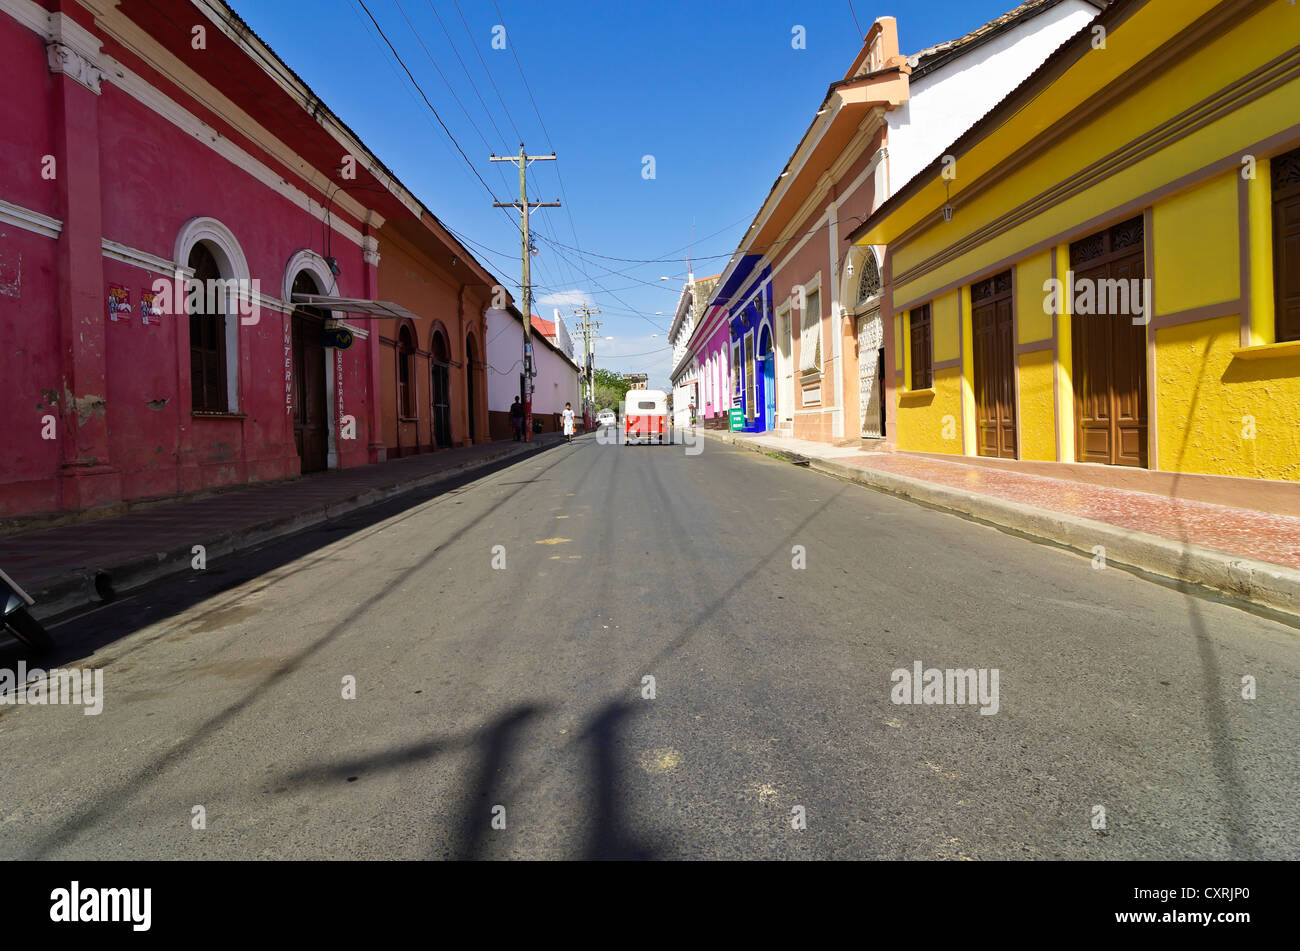 Street with colourful houses, Granada, founded in 1524, Nicaragua, Central America - Stock Image